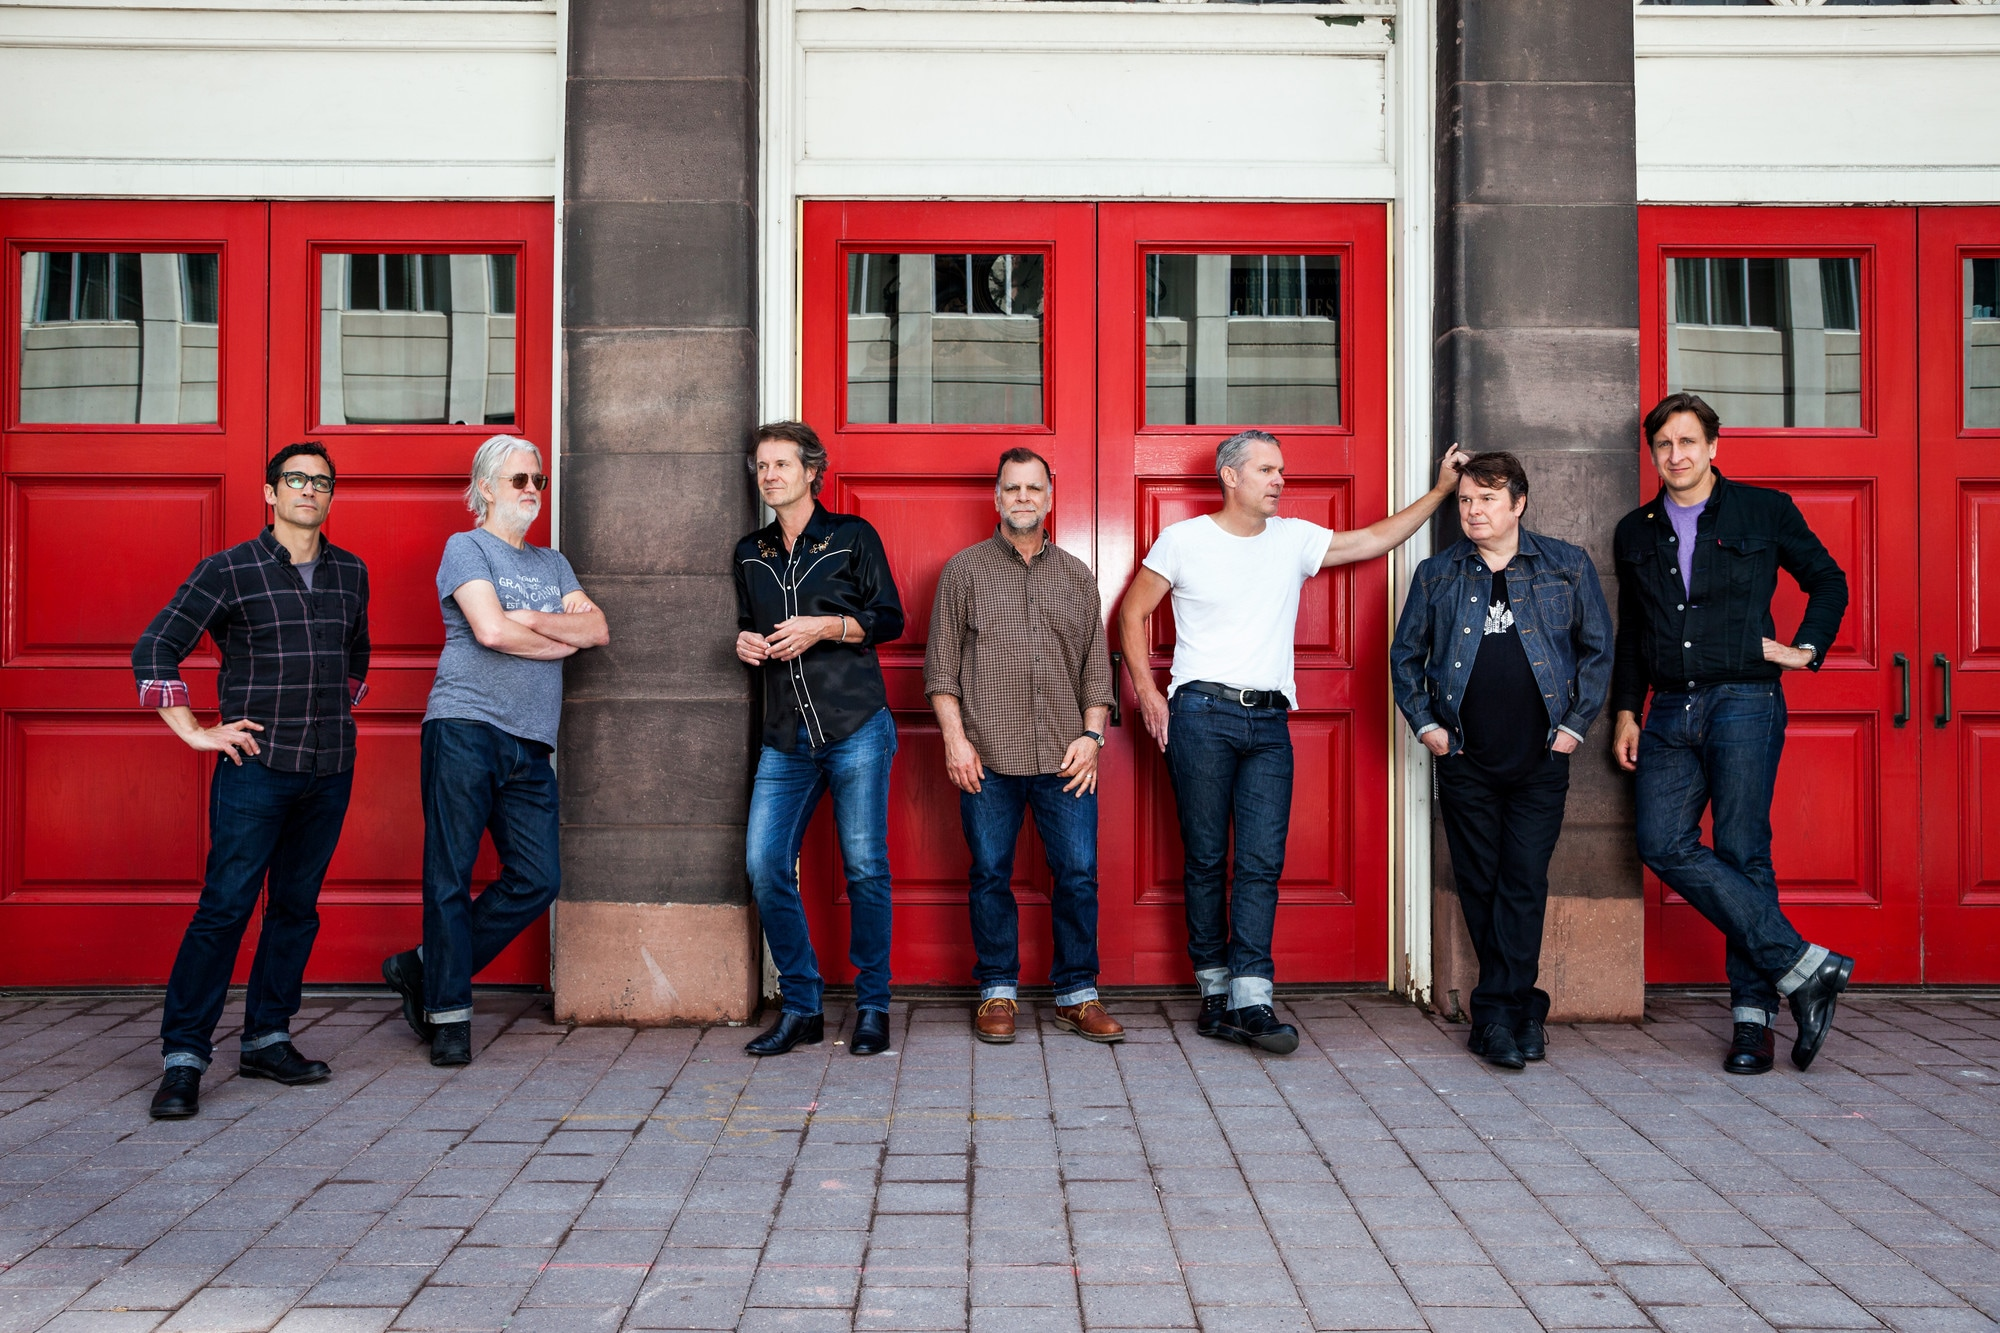 Seven man stand facing either the camera or one another. They all wear jeans and either a t-shirt or a button down shirt. In front of three sets of red doors that lead from the music hall to the street. Two brown stone columns divide the sets of doors. Above the doors are white panelling.